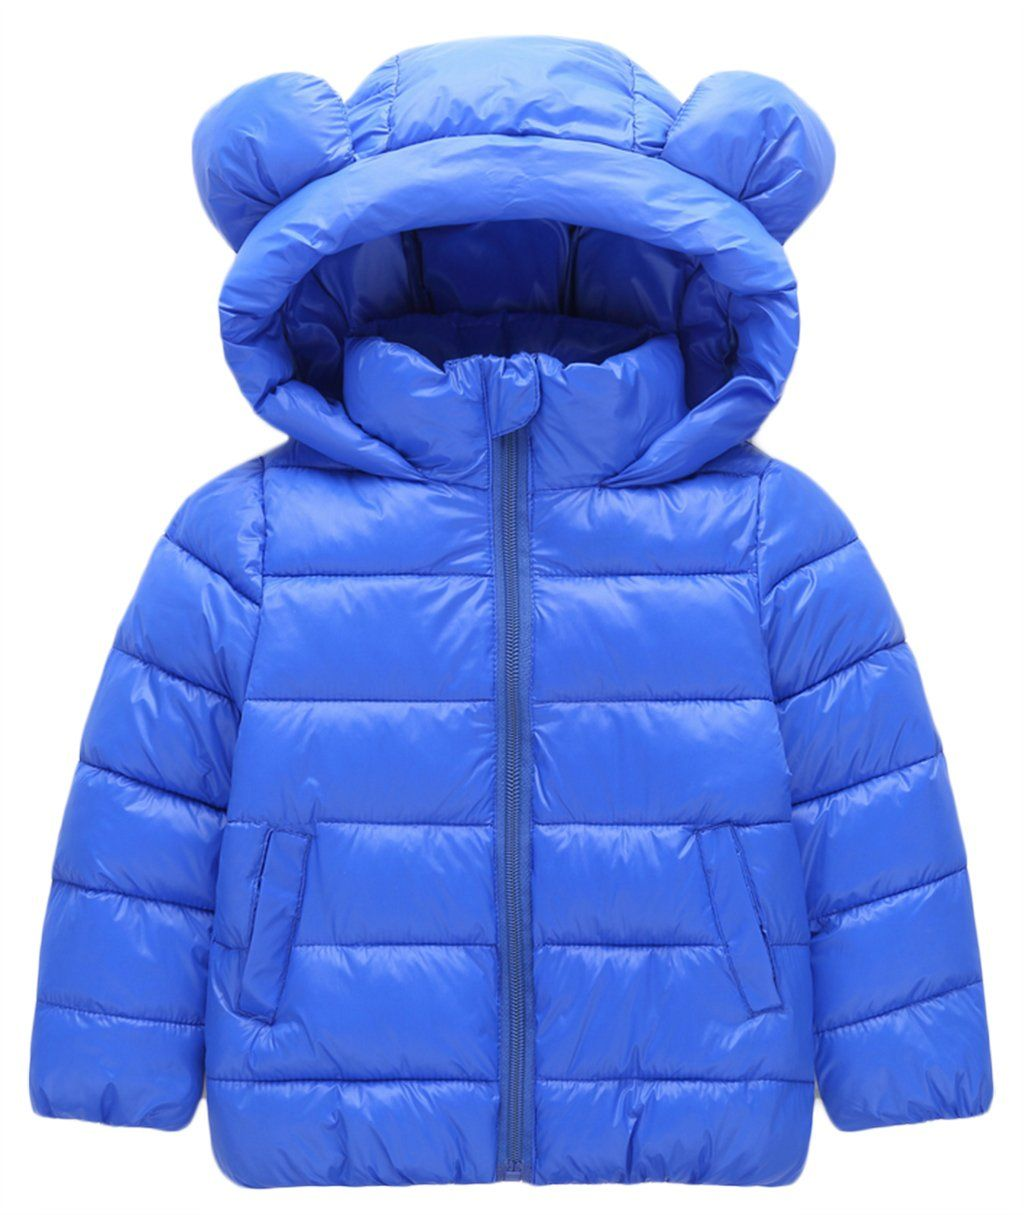 6224bf5b7 Kids Boys Girls 3D Cartoon Bear Ear Hooded Puffer Coat Down ...